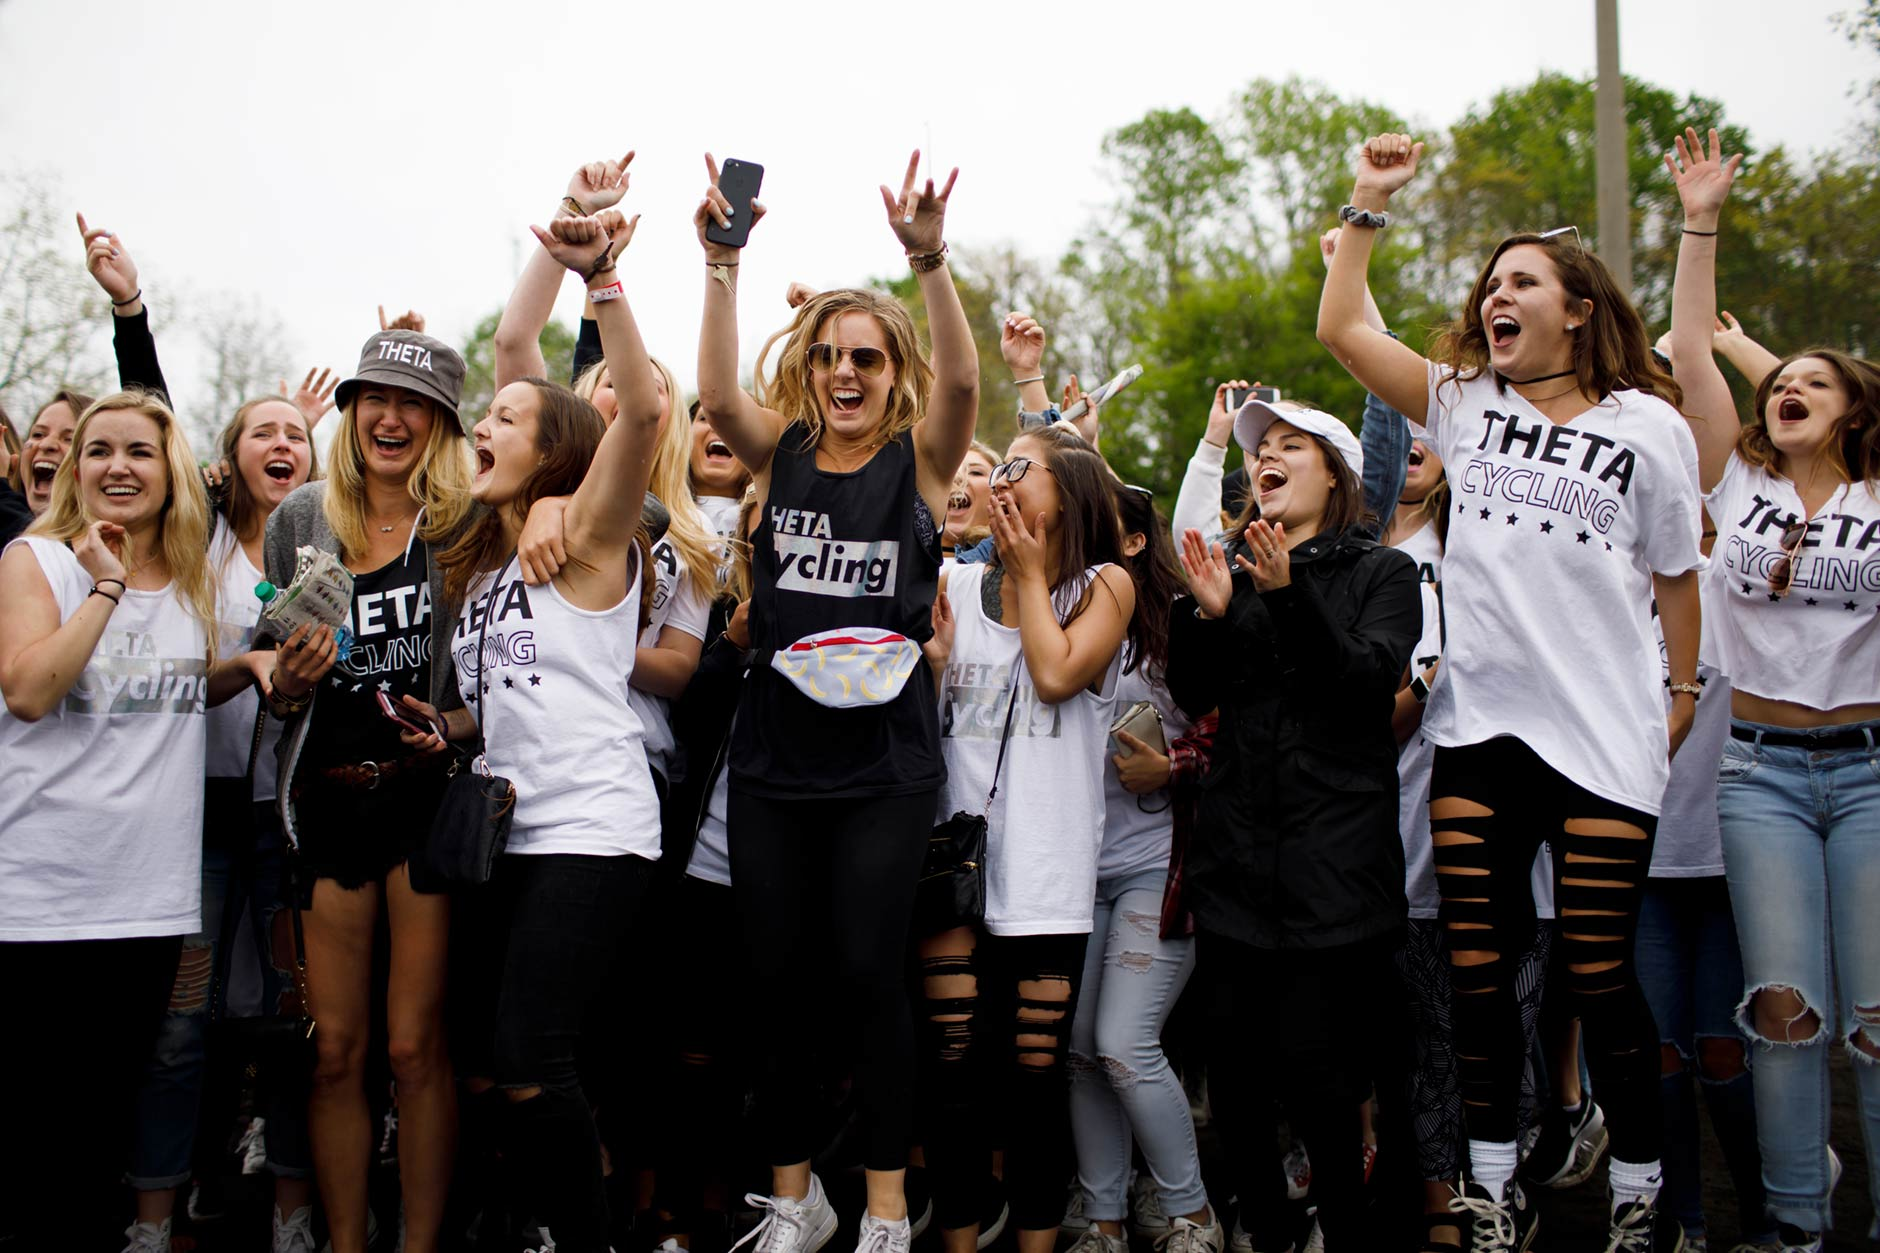 Kappa Alpha Theta sisters storm the track to celebrate after their sorority won the Women's Little 500 at Bill Armstrong Stadium on Friday, April 21, 2017. (James Brosher/IU Communications)